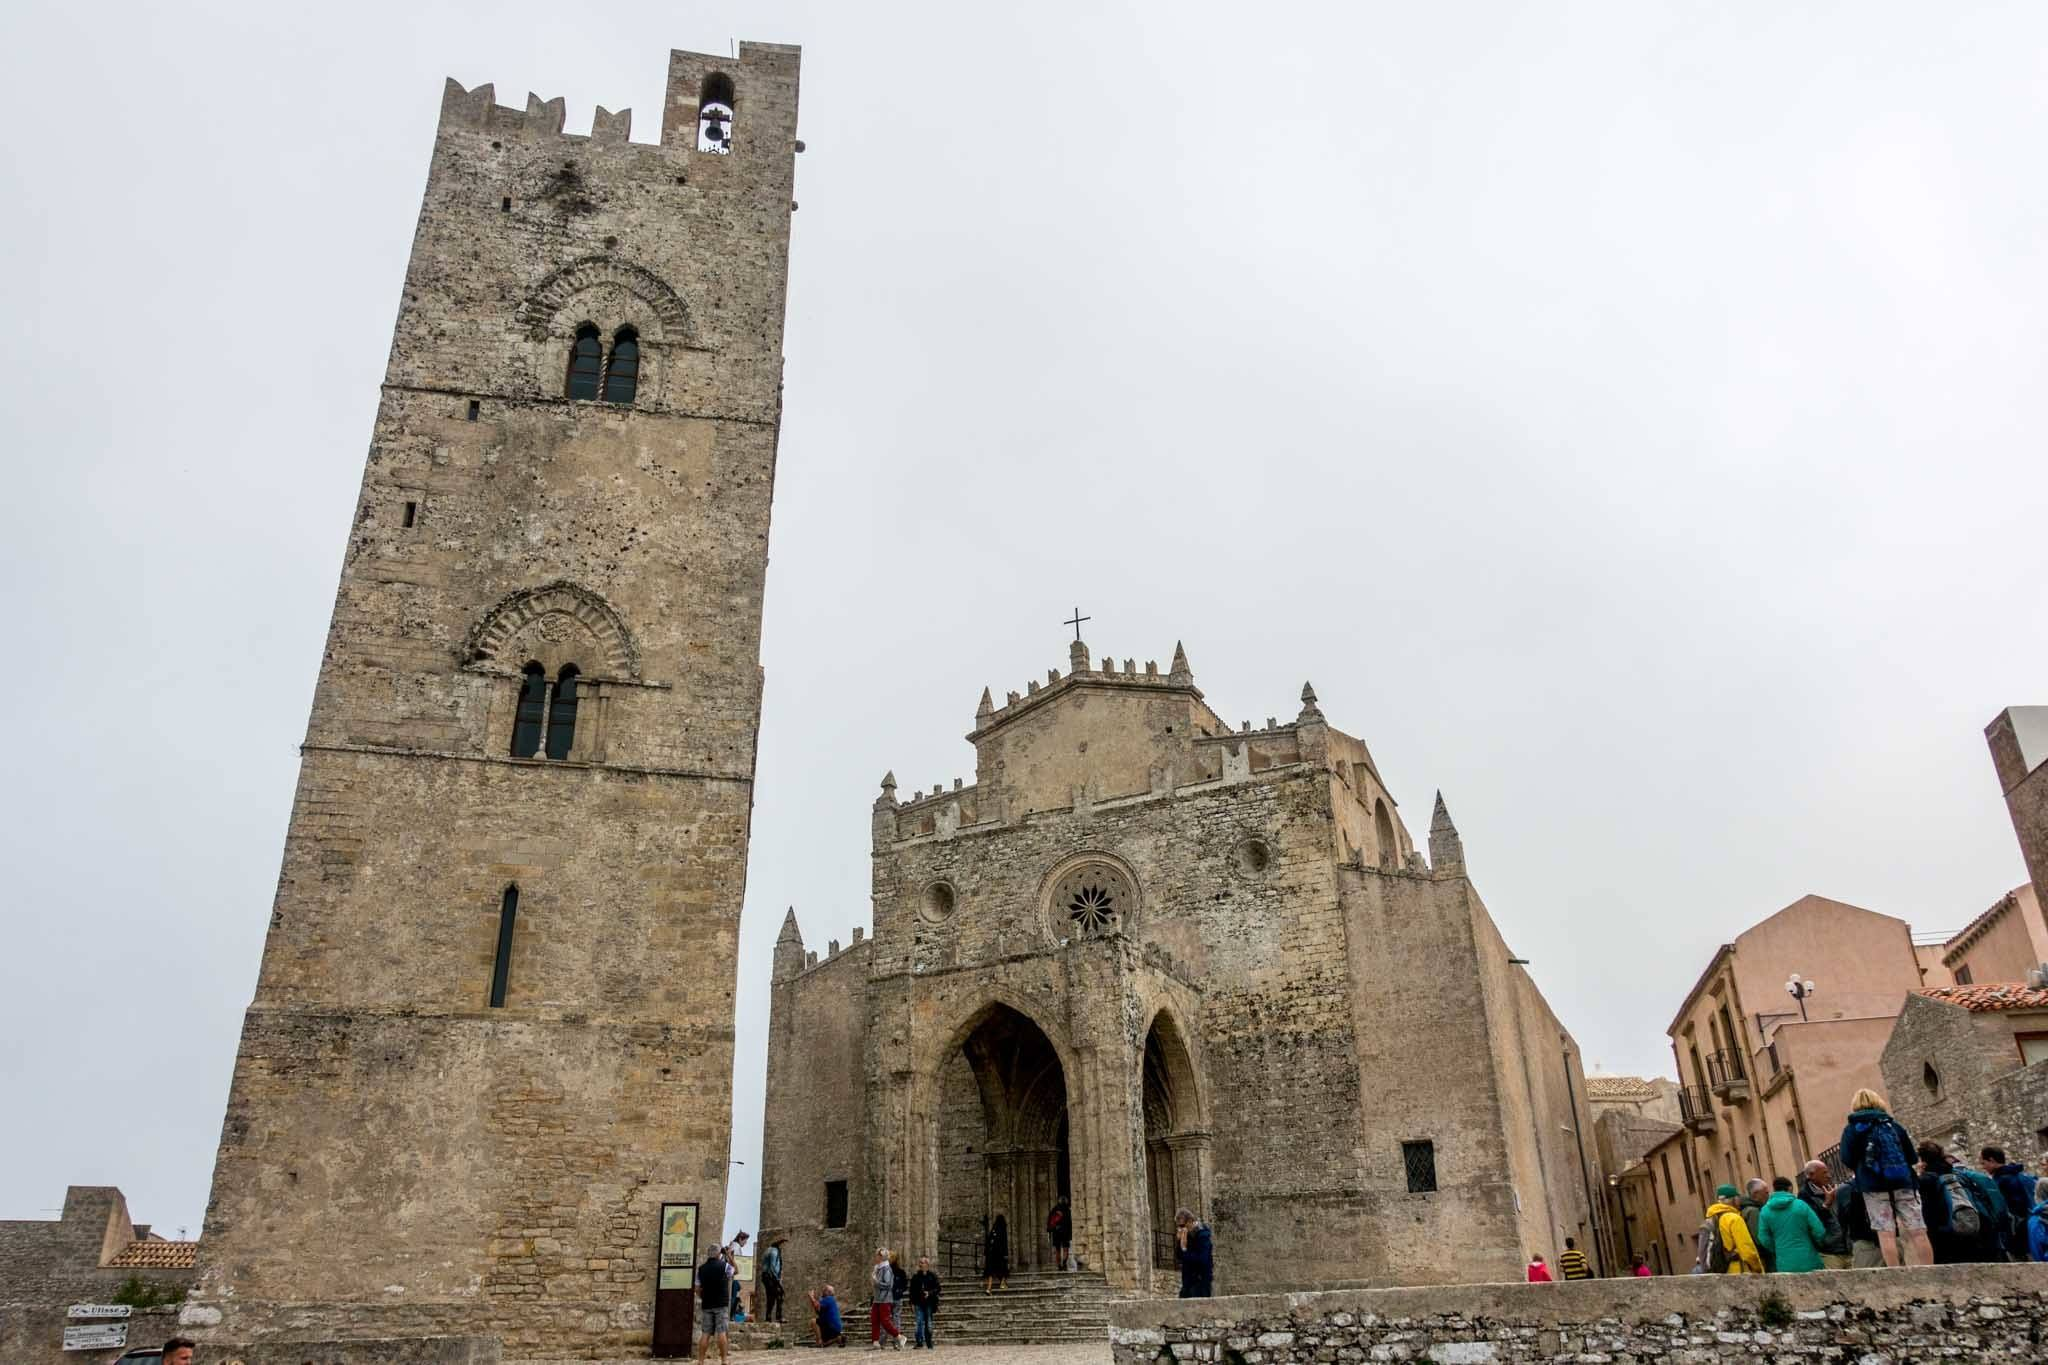 Church and belltower in Erice